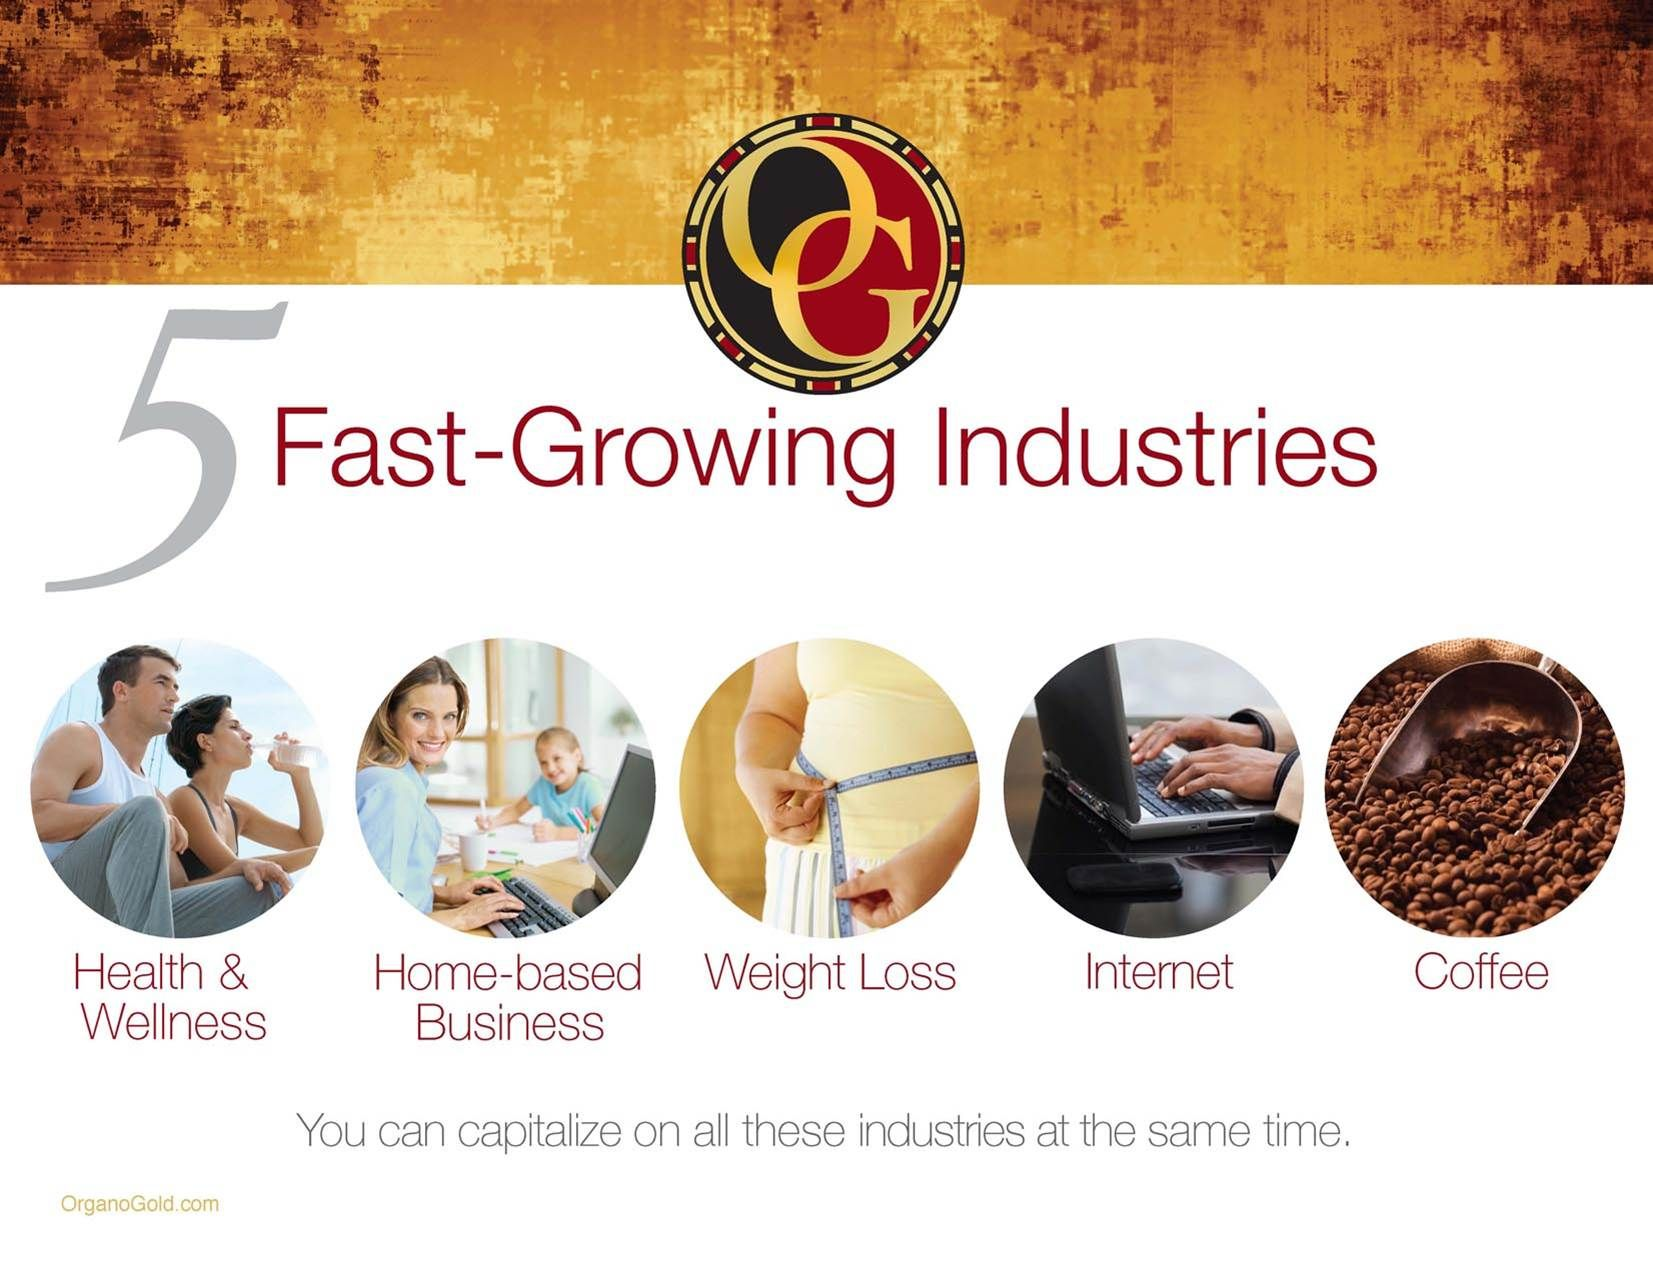 5 fastgrowing industries and we use them all Organo